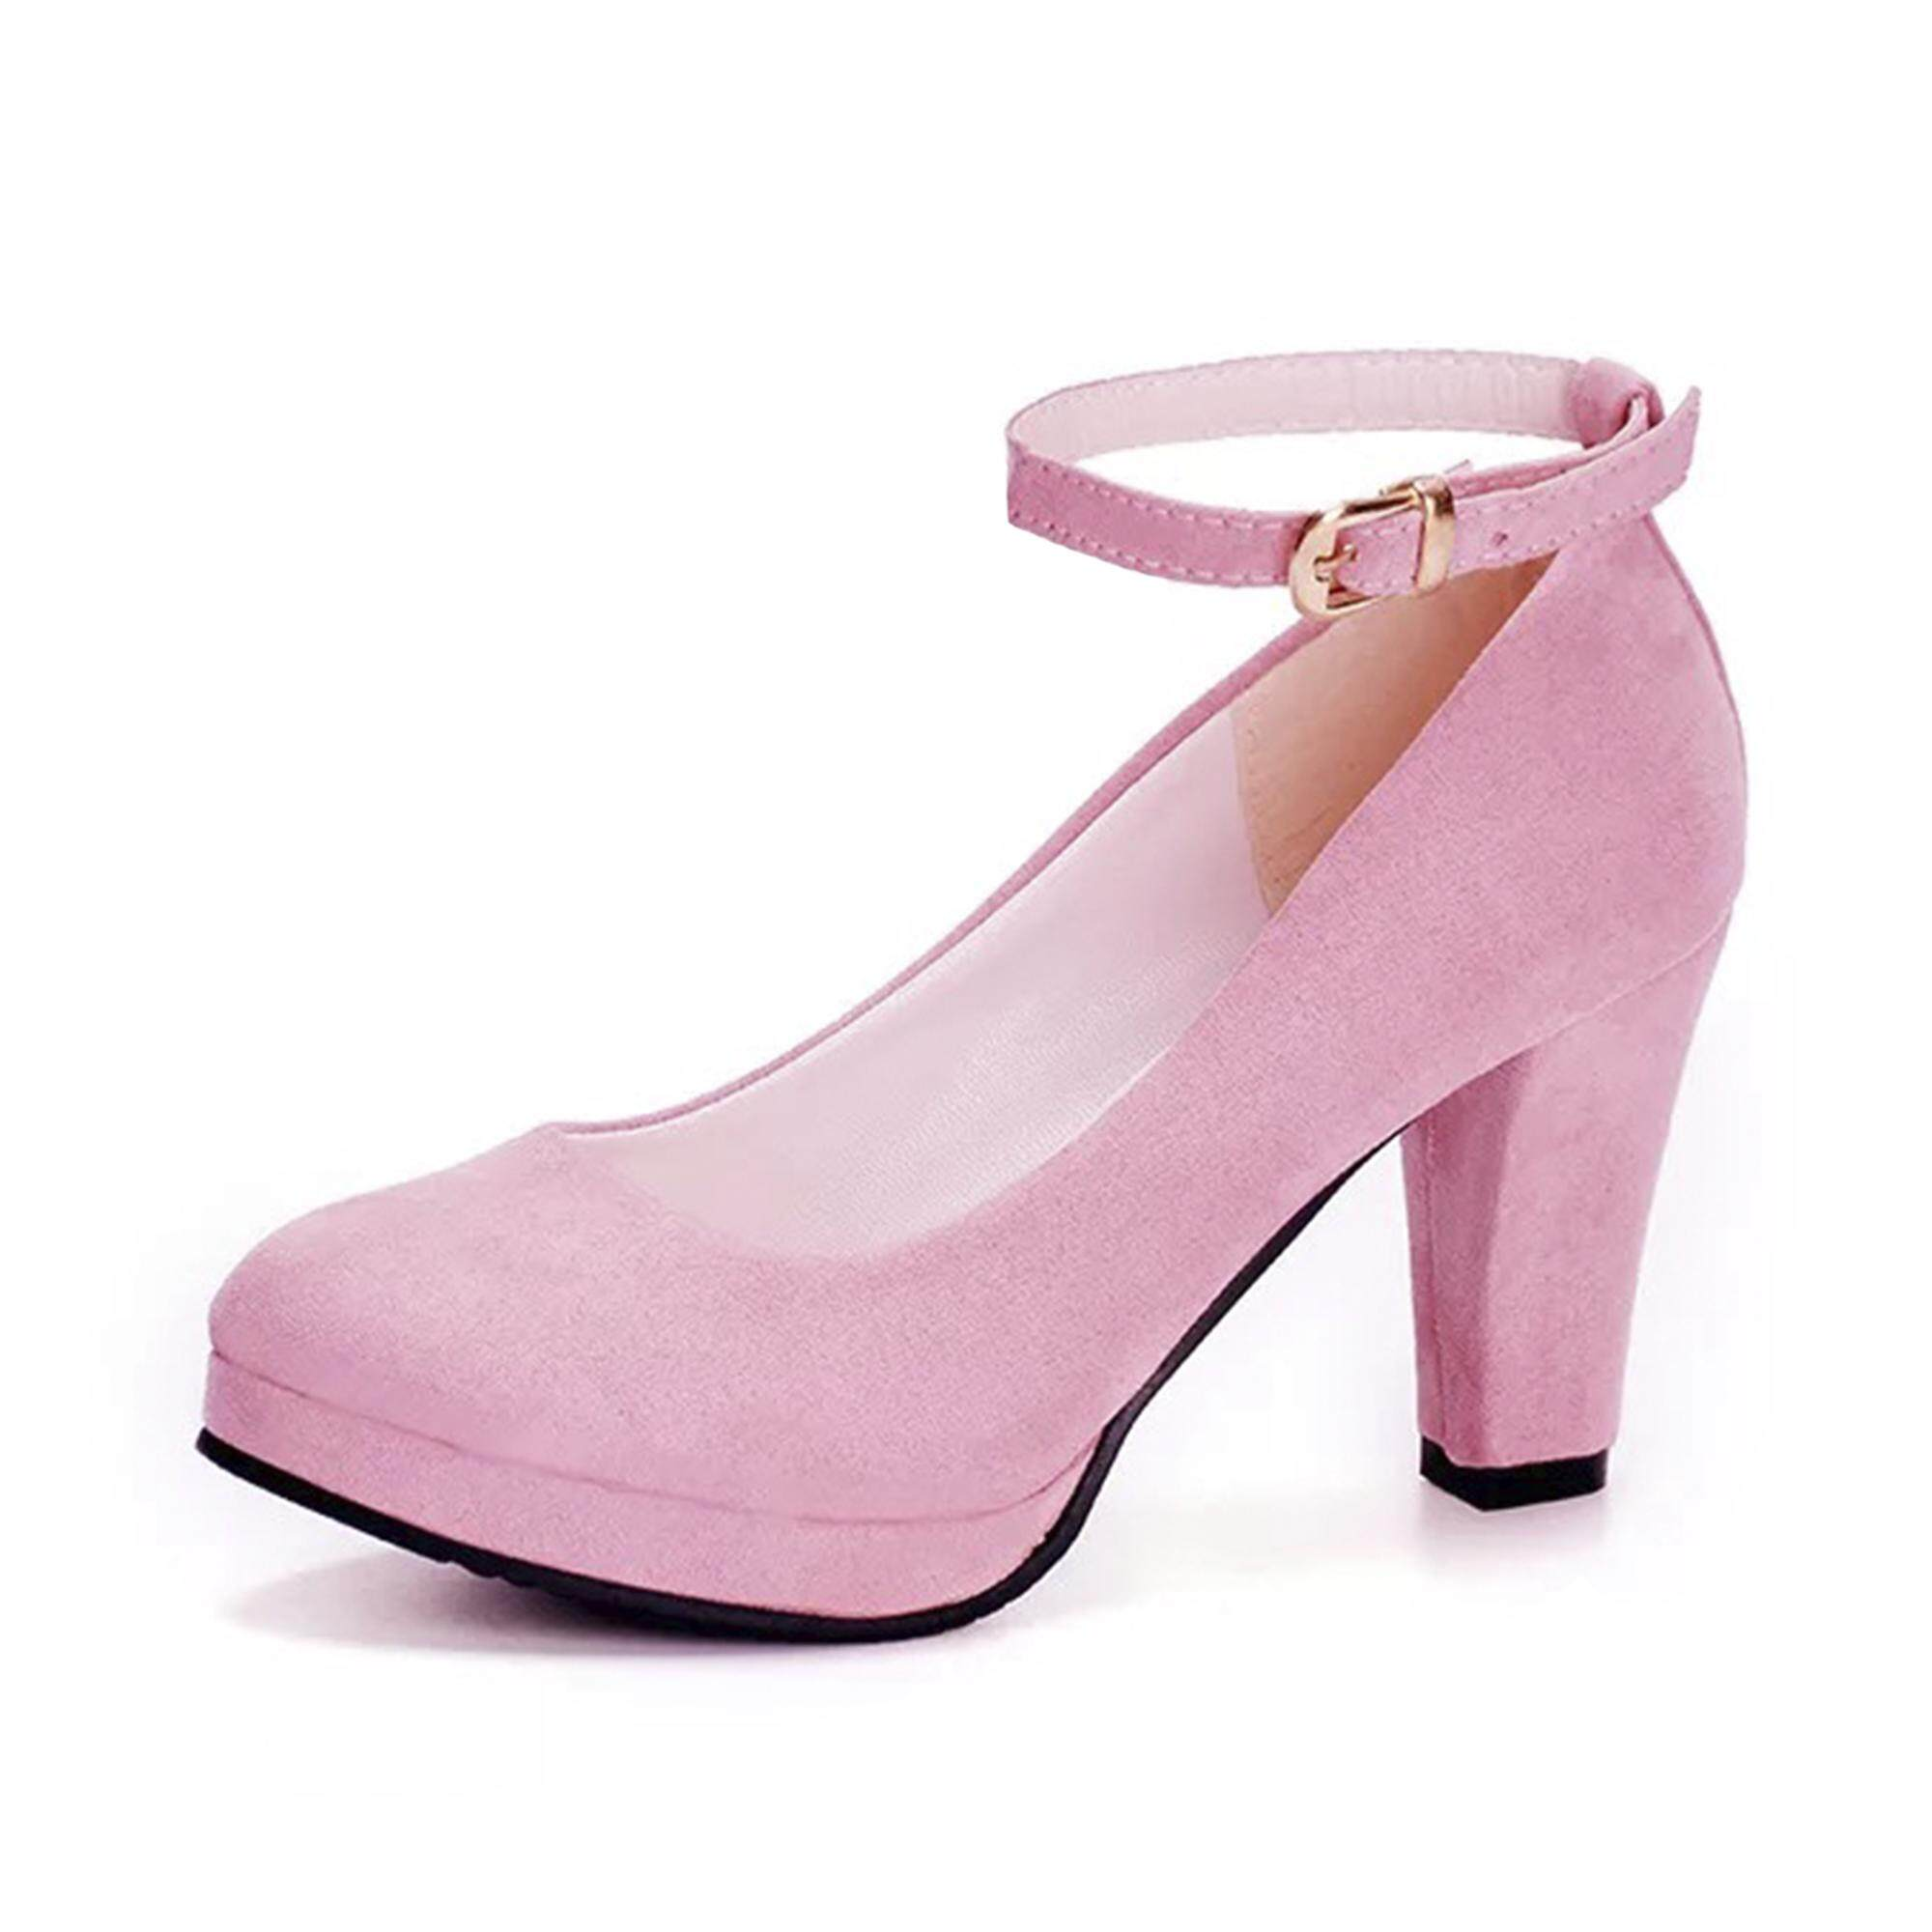 Ladies Shoes for the Best Price in Malaysia 069912c5db